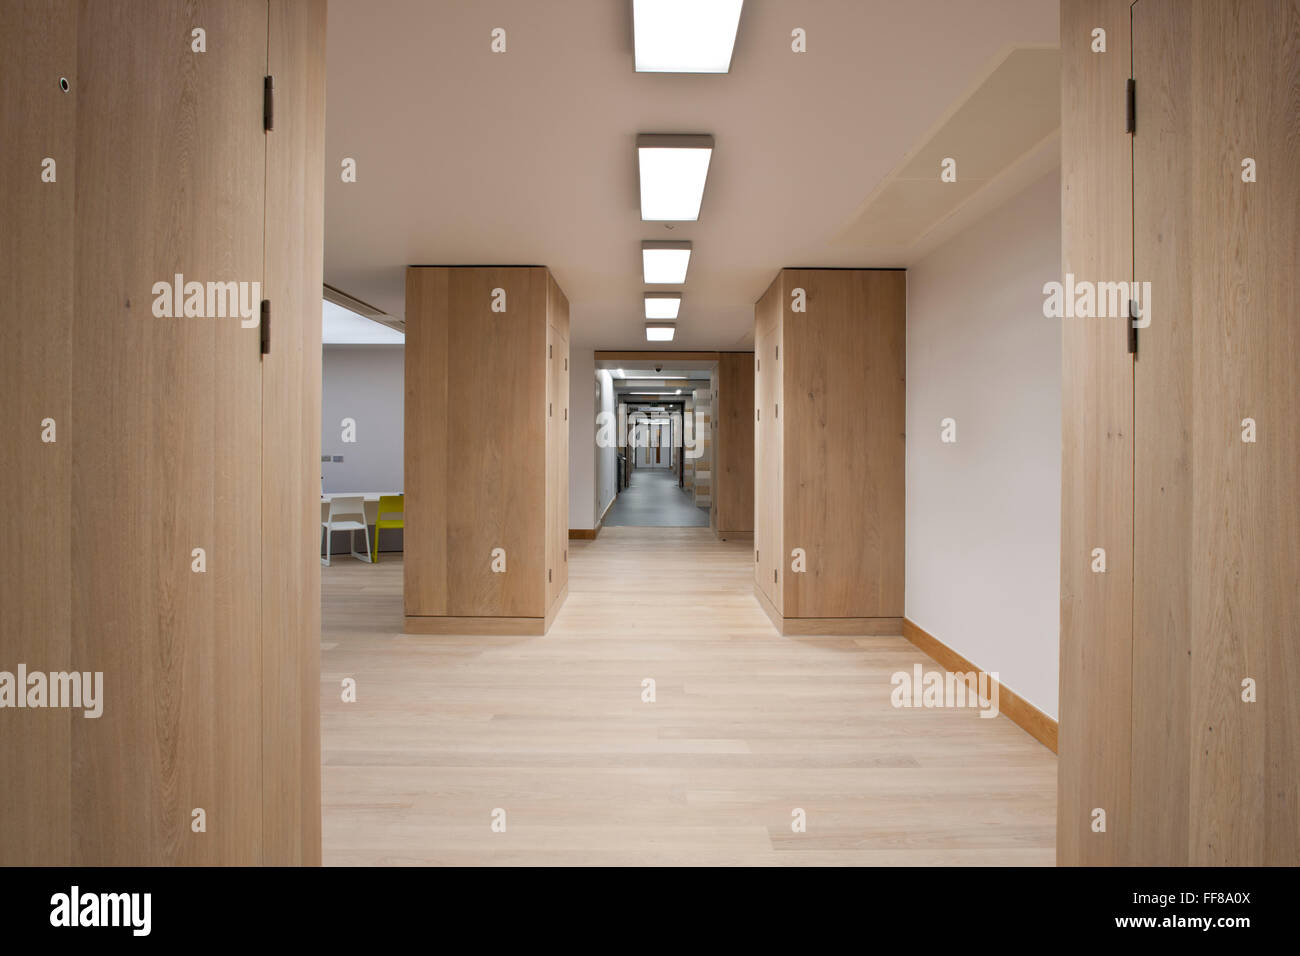 Corridor St Georges Hospital Tooting, London - Stock Image